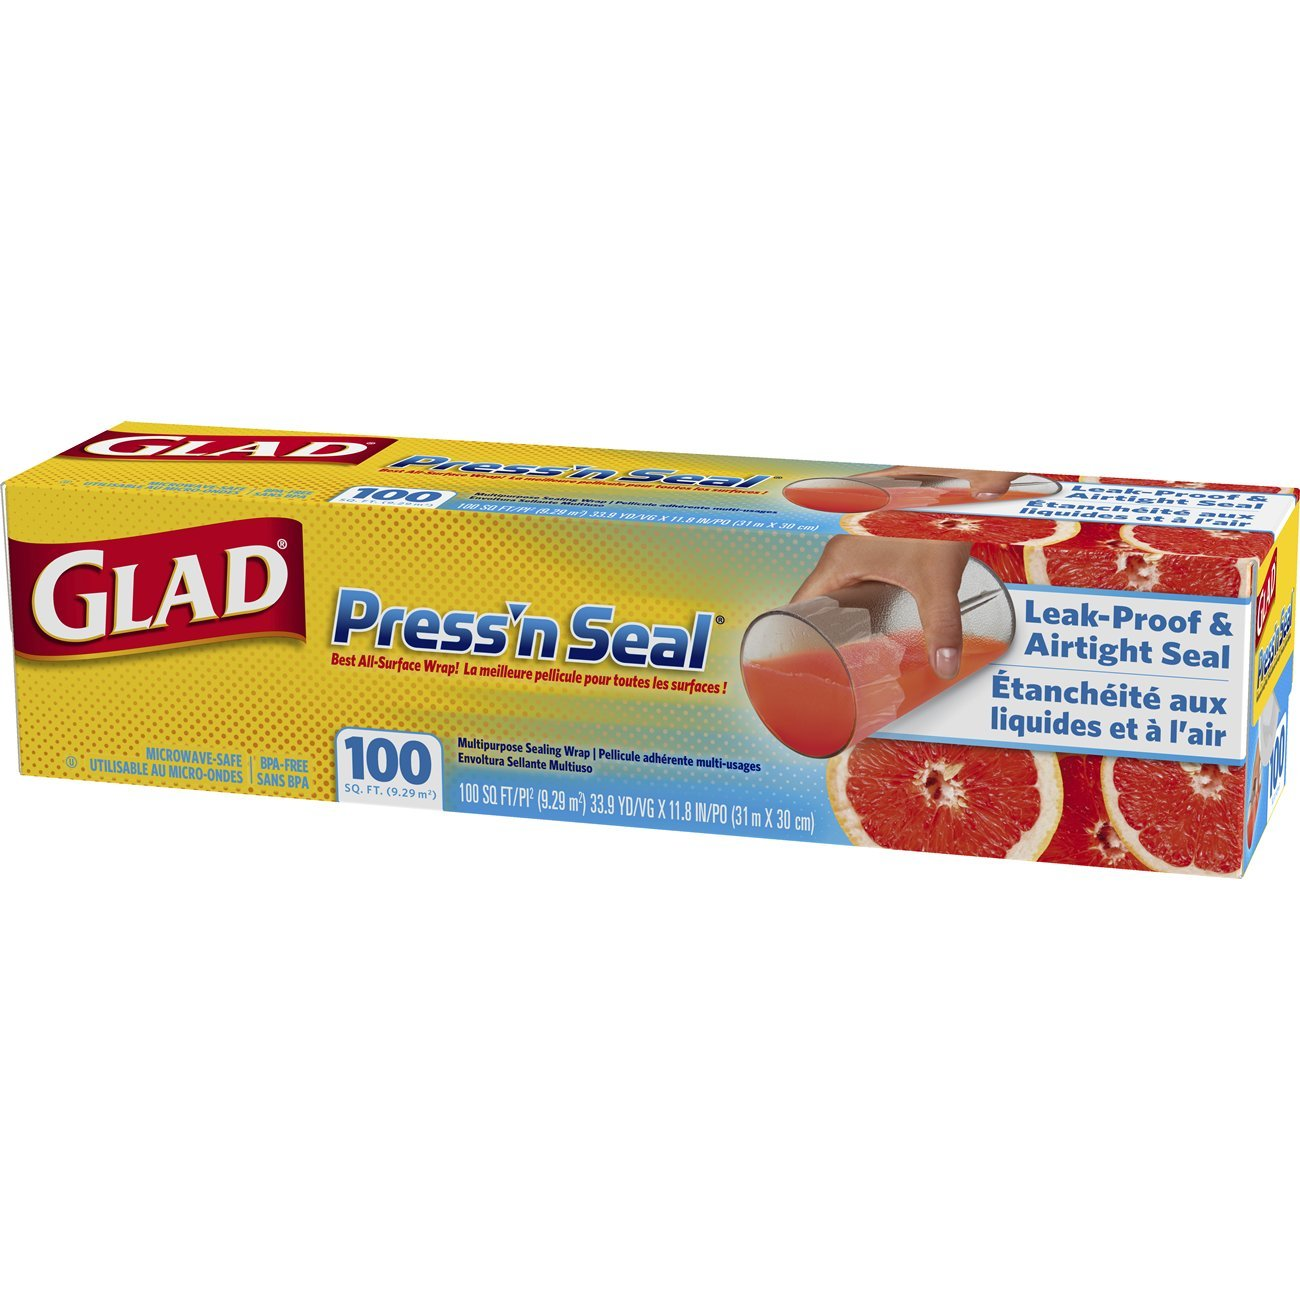 Plastik Wrapping Pure Fresh 30cm Daftar Harga Terkini Dan Atau Buah 300m Stretch Film Amazoncom Glad Pressn Seal Plastic Food Wrap 100 Square Foot